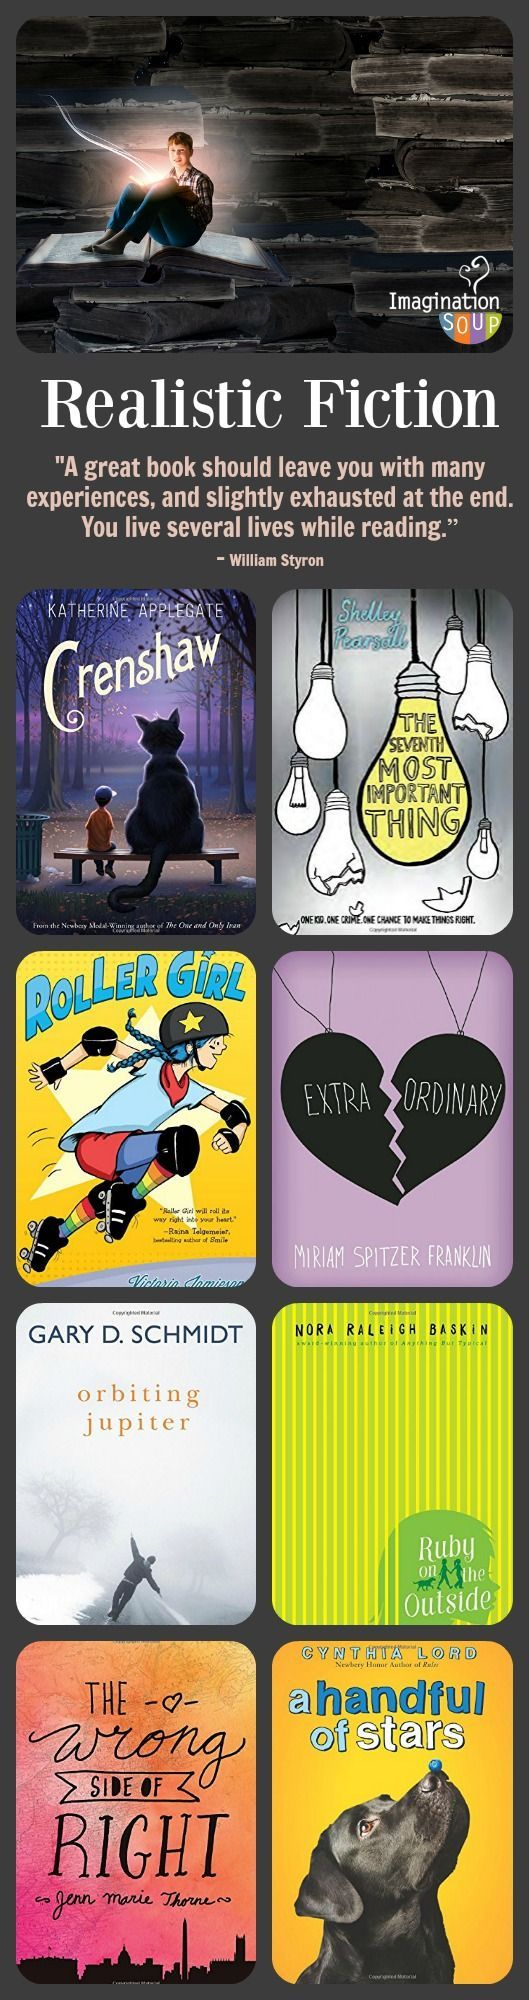 Realistic fiction middle grade books - these are amazing books & are life-changing, powerful stories!